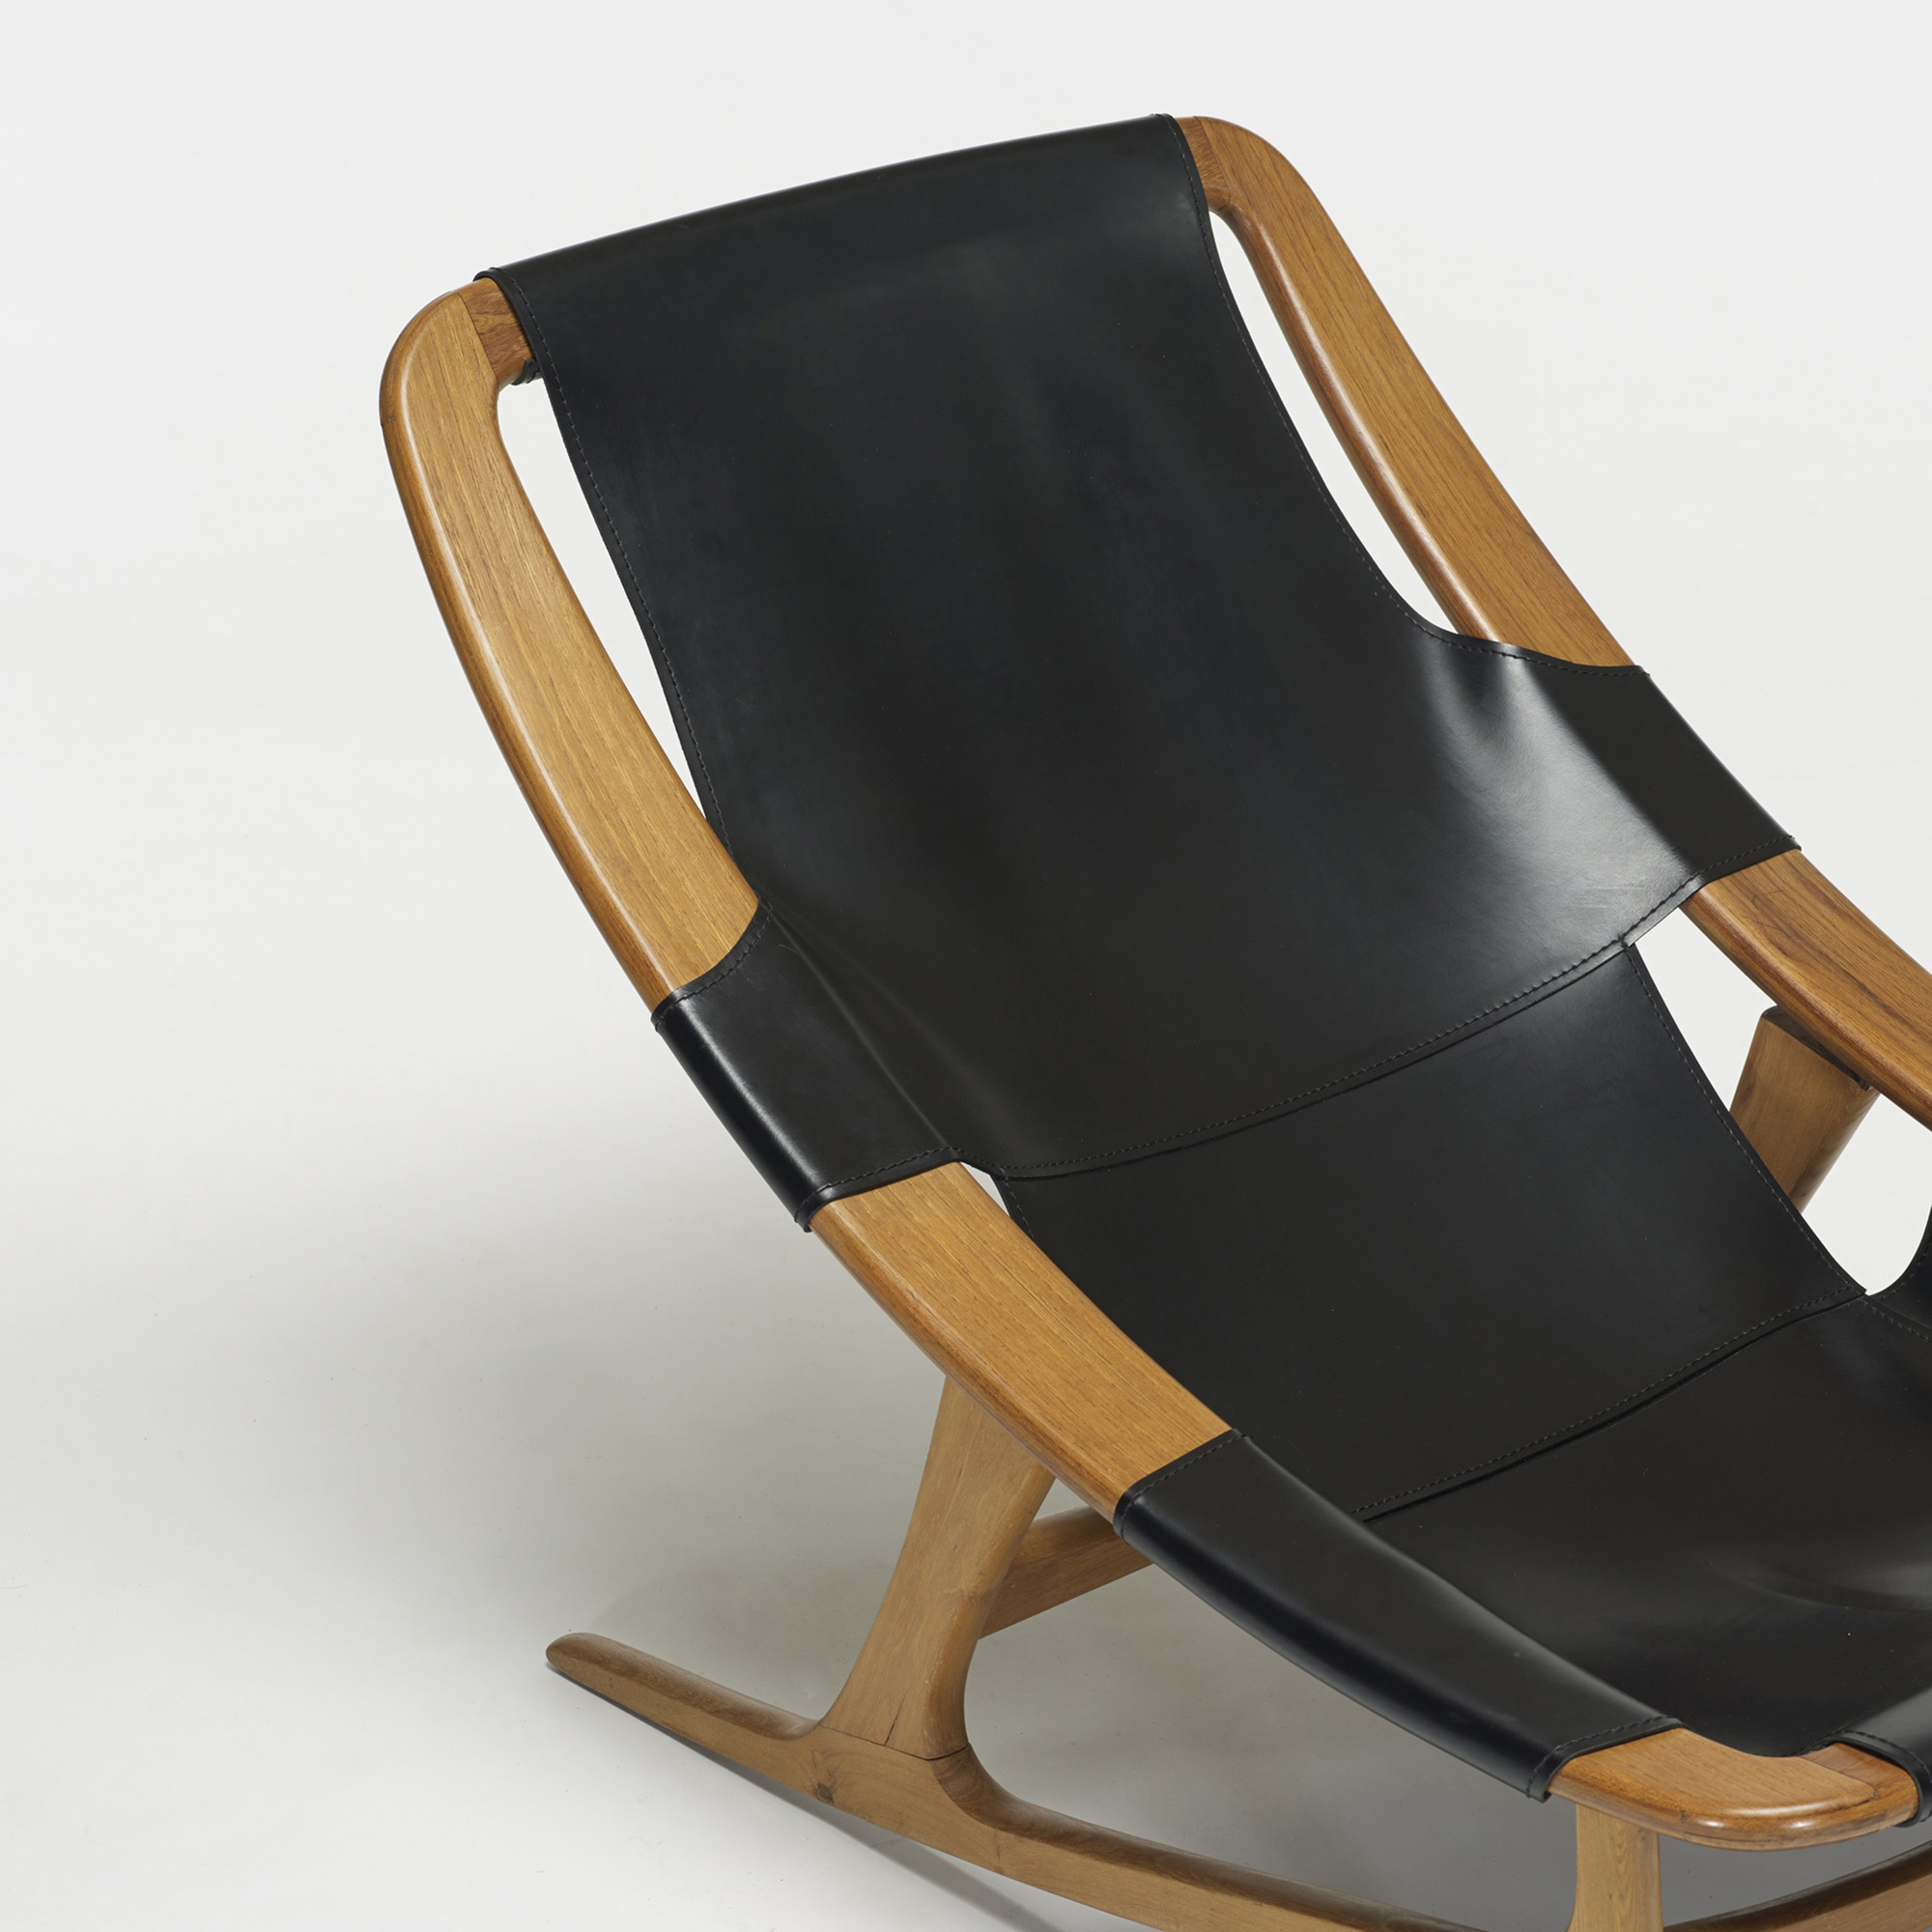 427: Arne Tidemand Ruud / Car lounge chair (3 of 3)